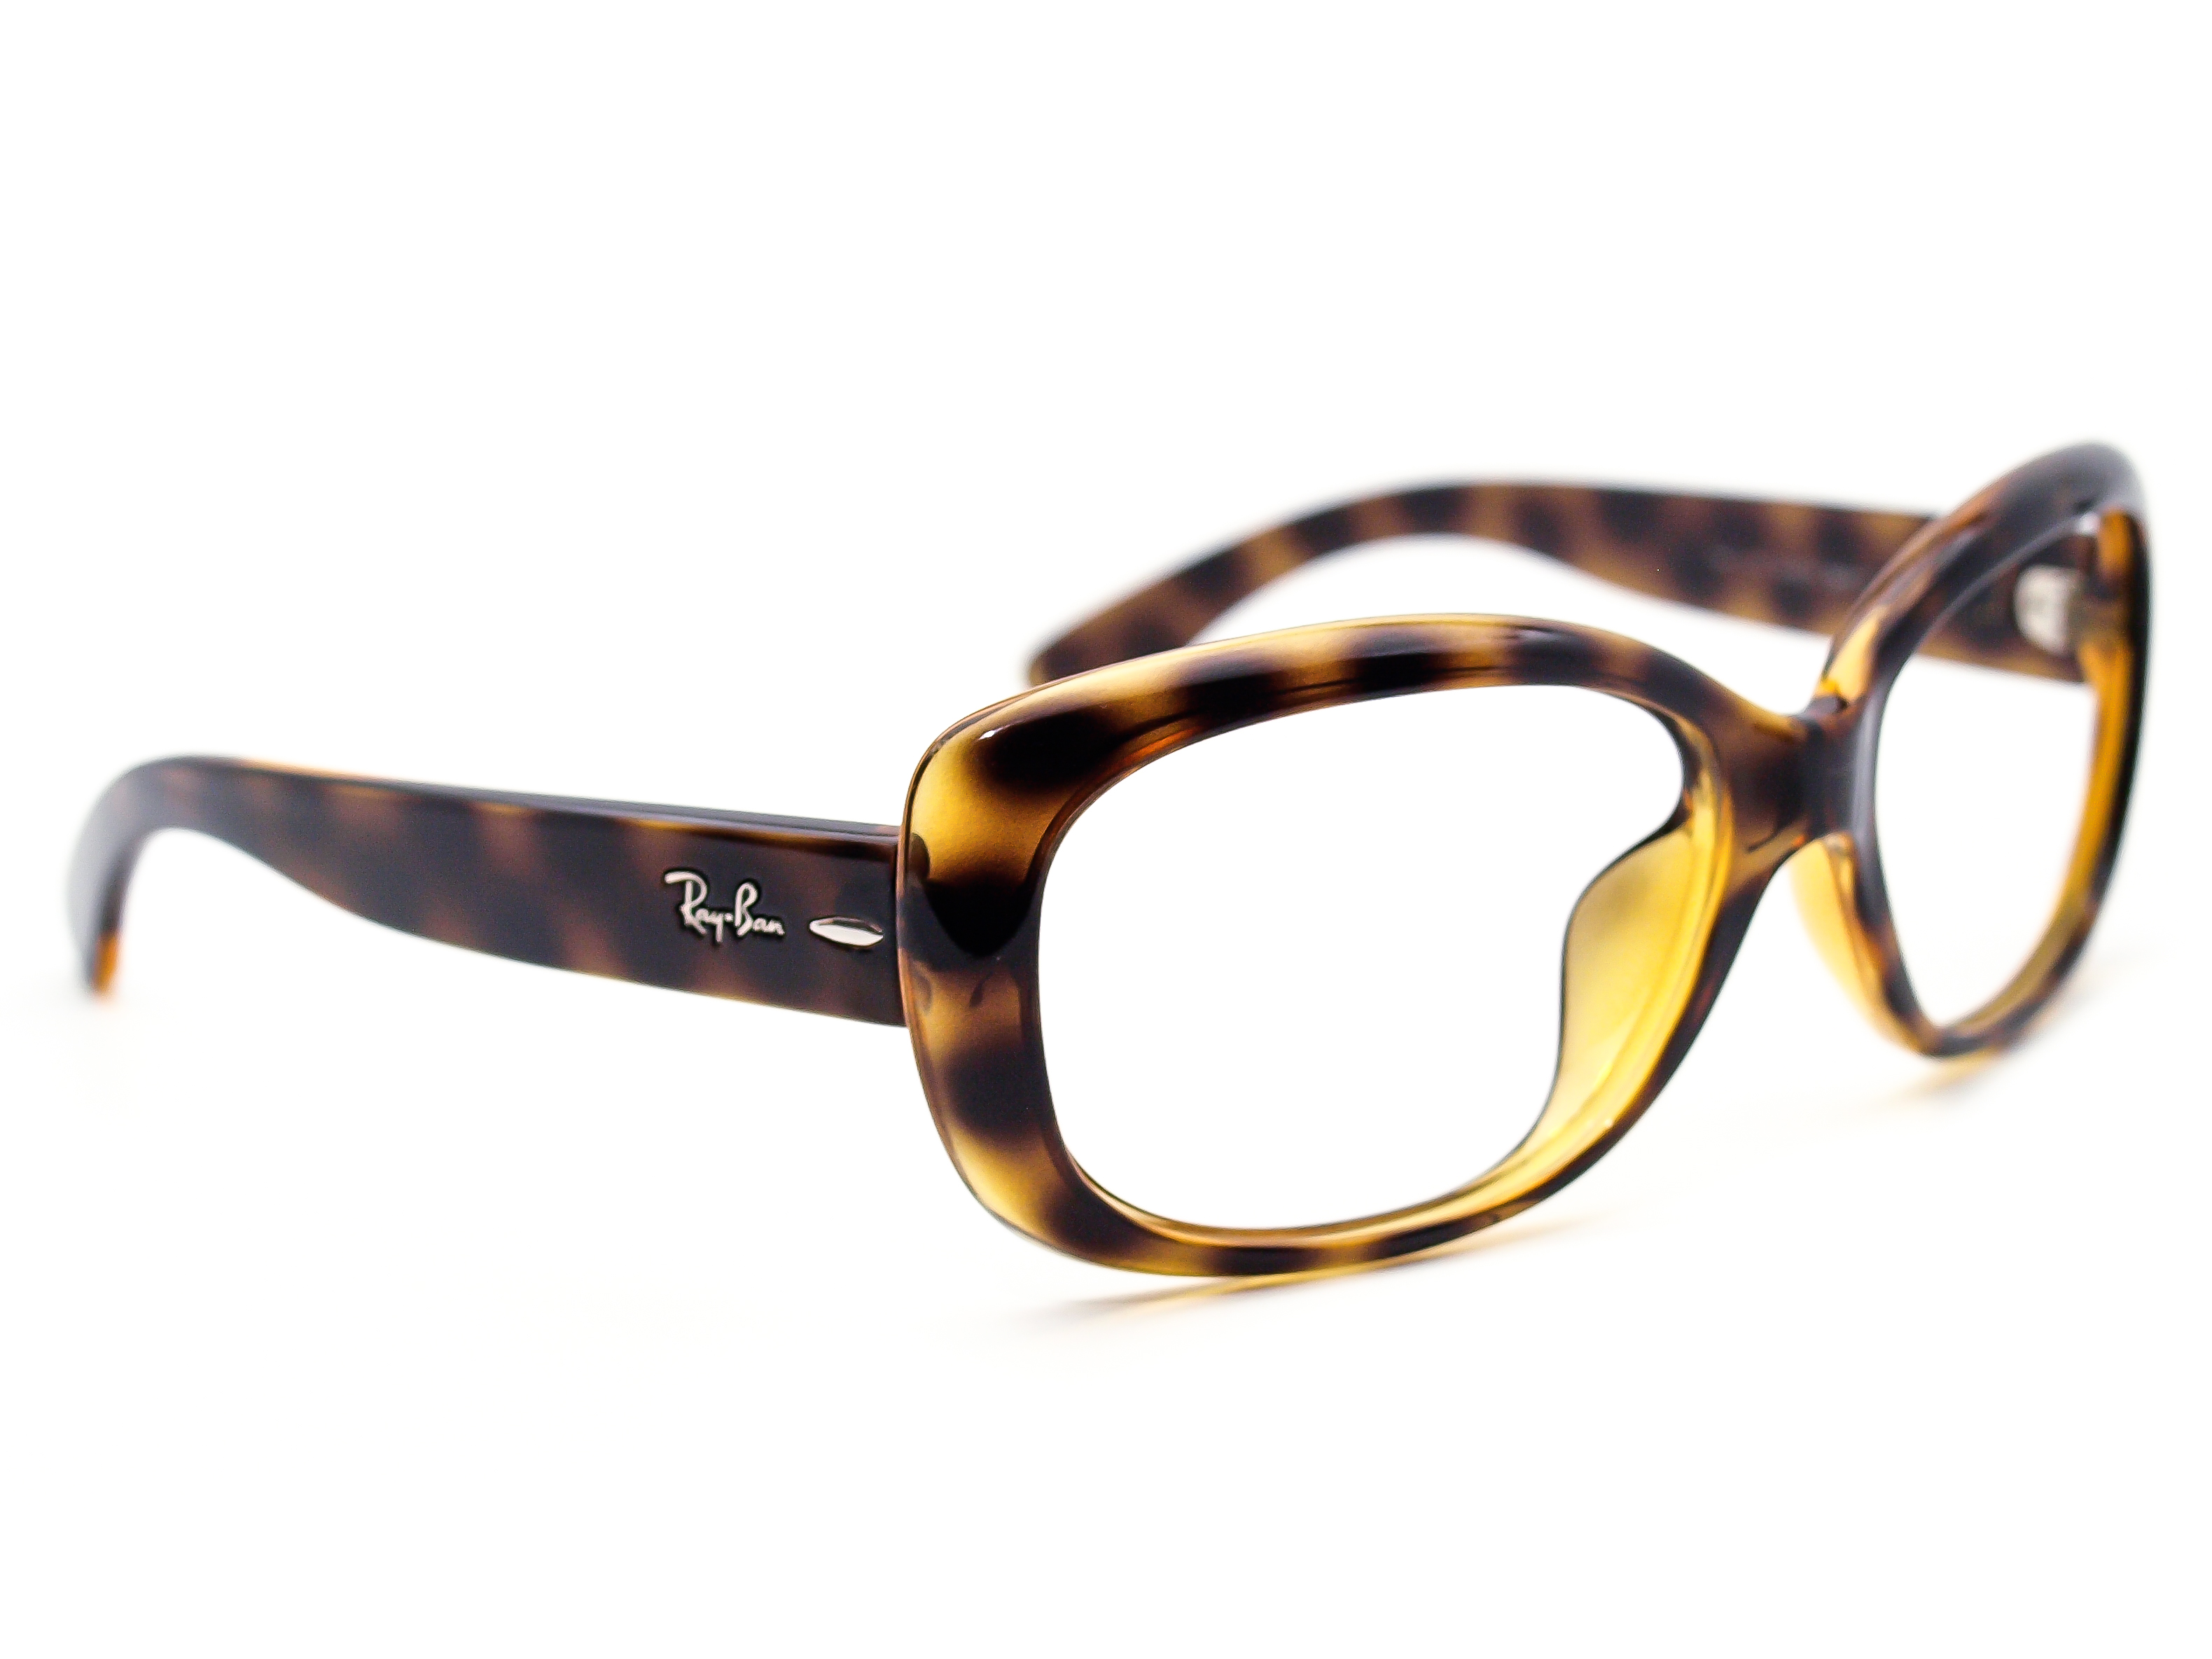 Ray Ban RB 4101F 710/71 Sunglasses Frame Only